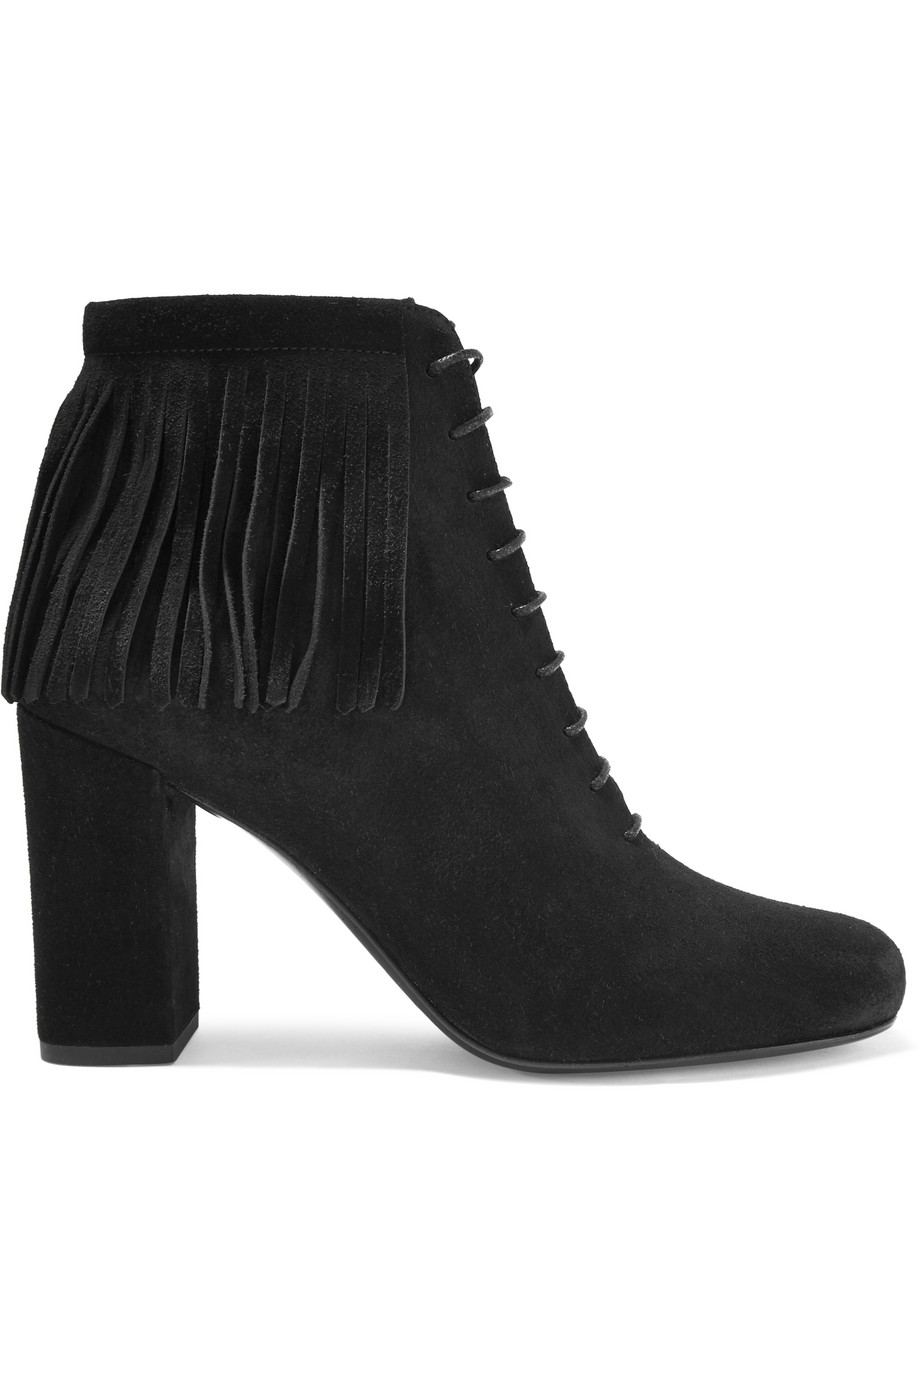 Saint Laurent Babies Fringed Suede Boots, Black, Women's US Size: 6, Size: 36.5